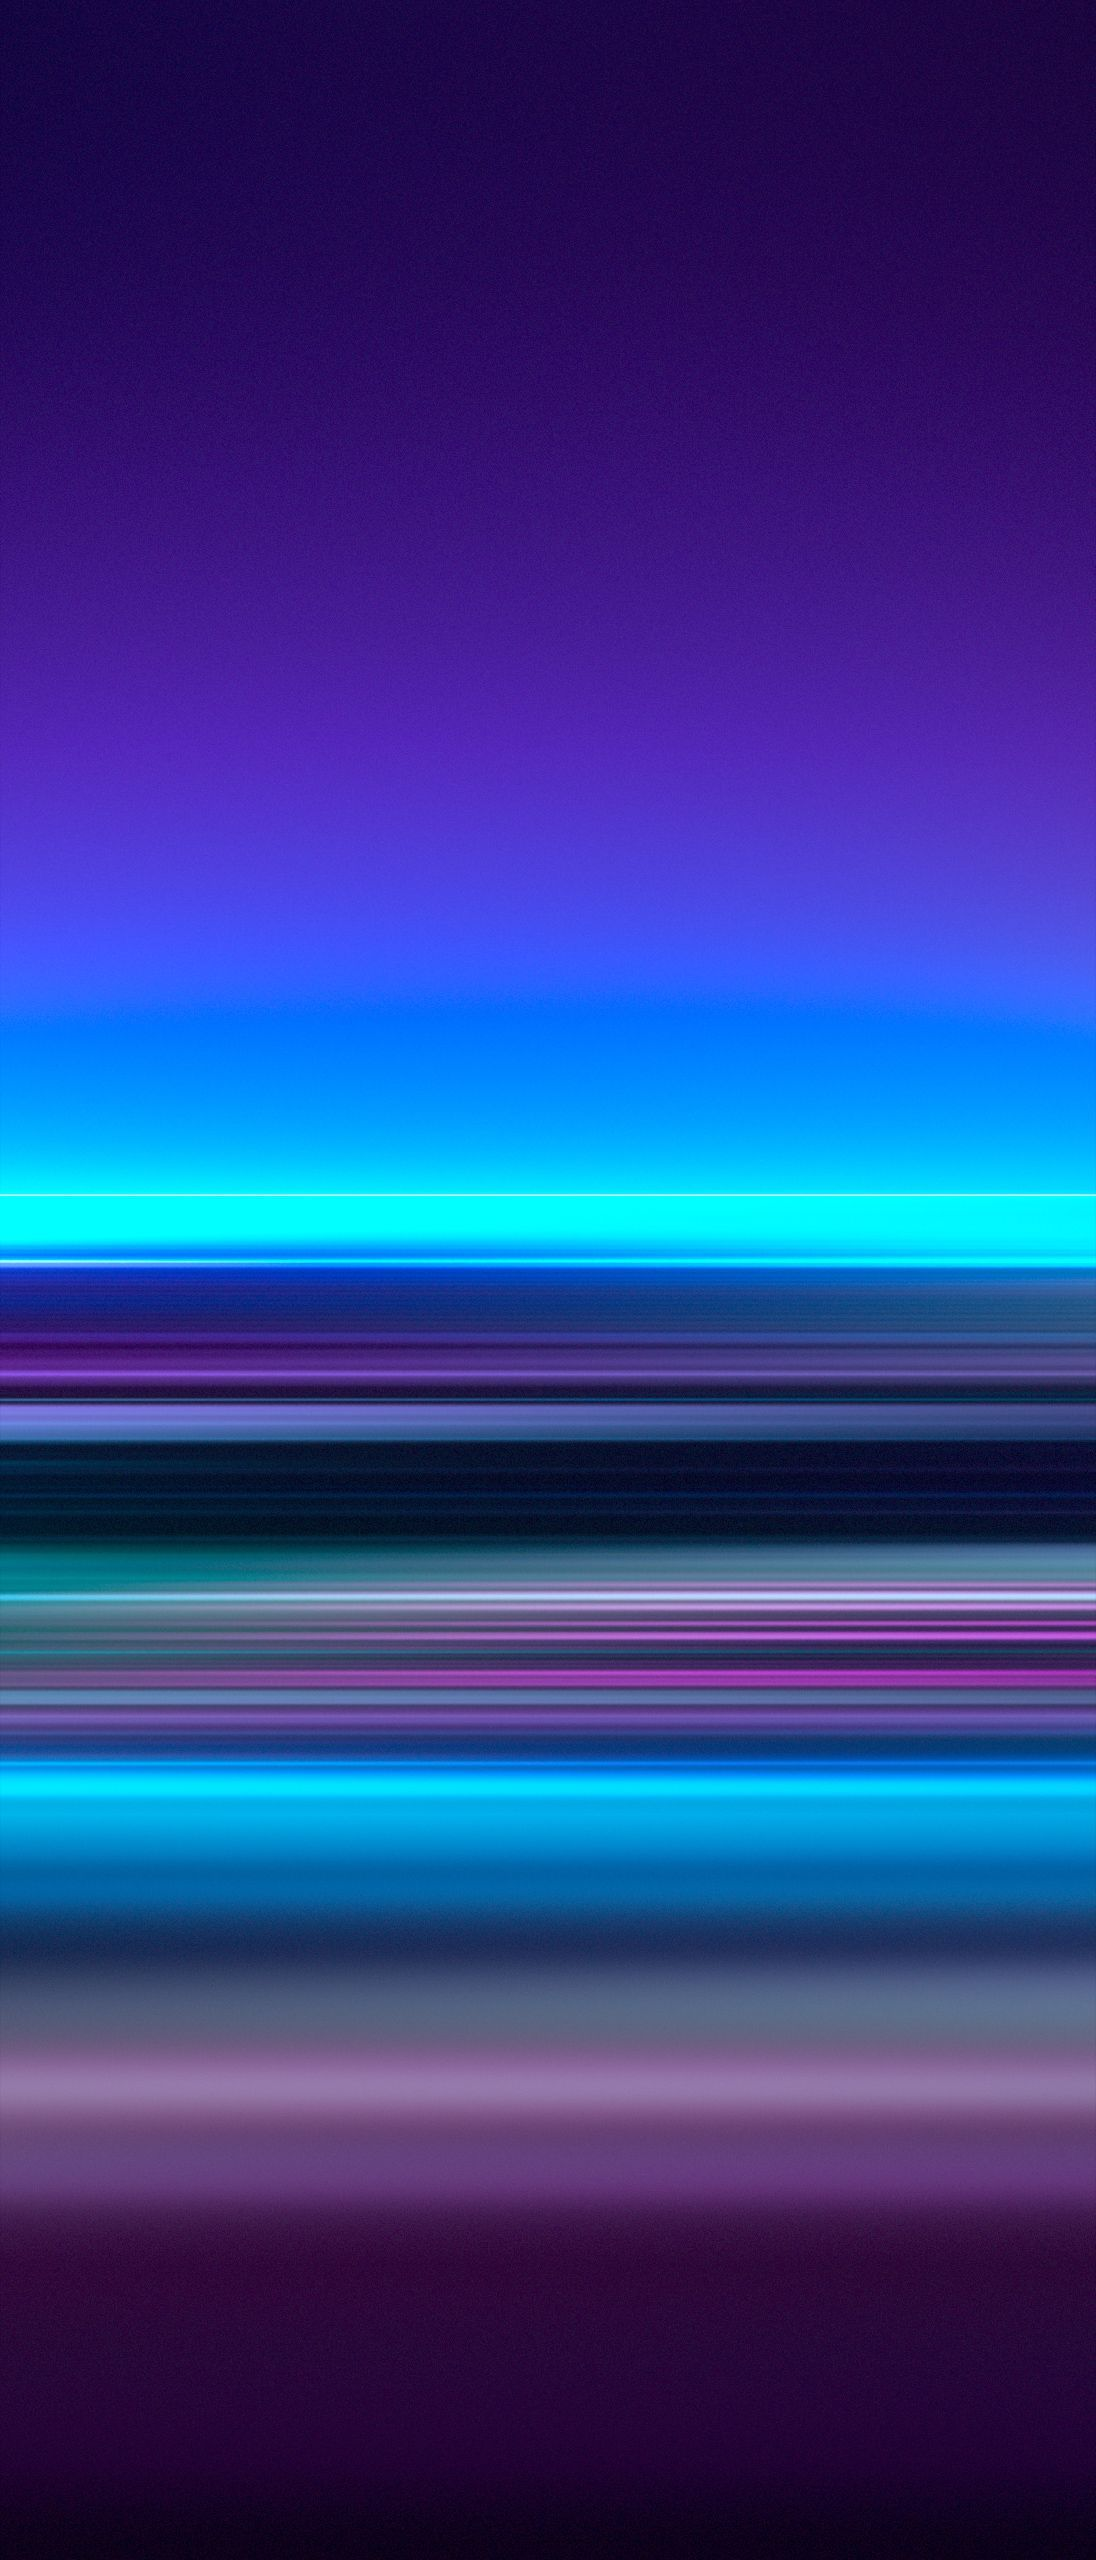 Sony Xperia 1 Wallpaper YTECHB Exclusive Sony Xperia 1 Wallpaper YTECHB Exclusive YTECHB ytechbofficial Wallpapers Download Sony Xperia 1 Official Wallpaper Here Full-HD Resolution 2560 X nbsp  hellip   #Exclusive #Phone backgrounds unique #Sony #wallpaper #Xperia #YTECHB